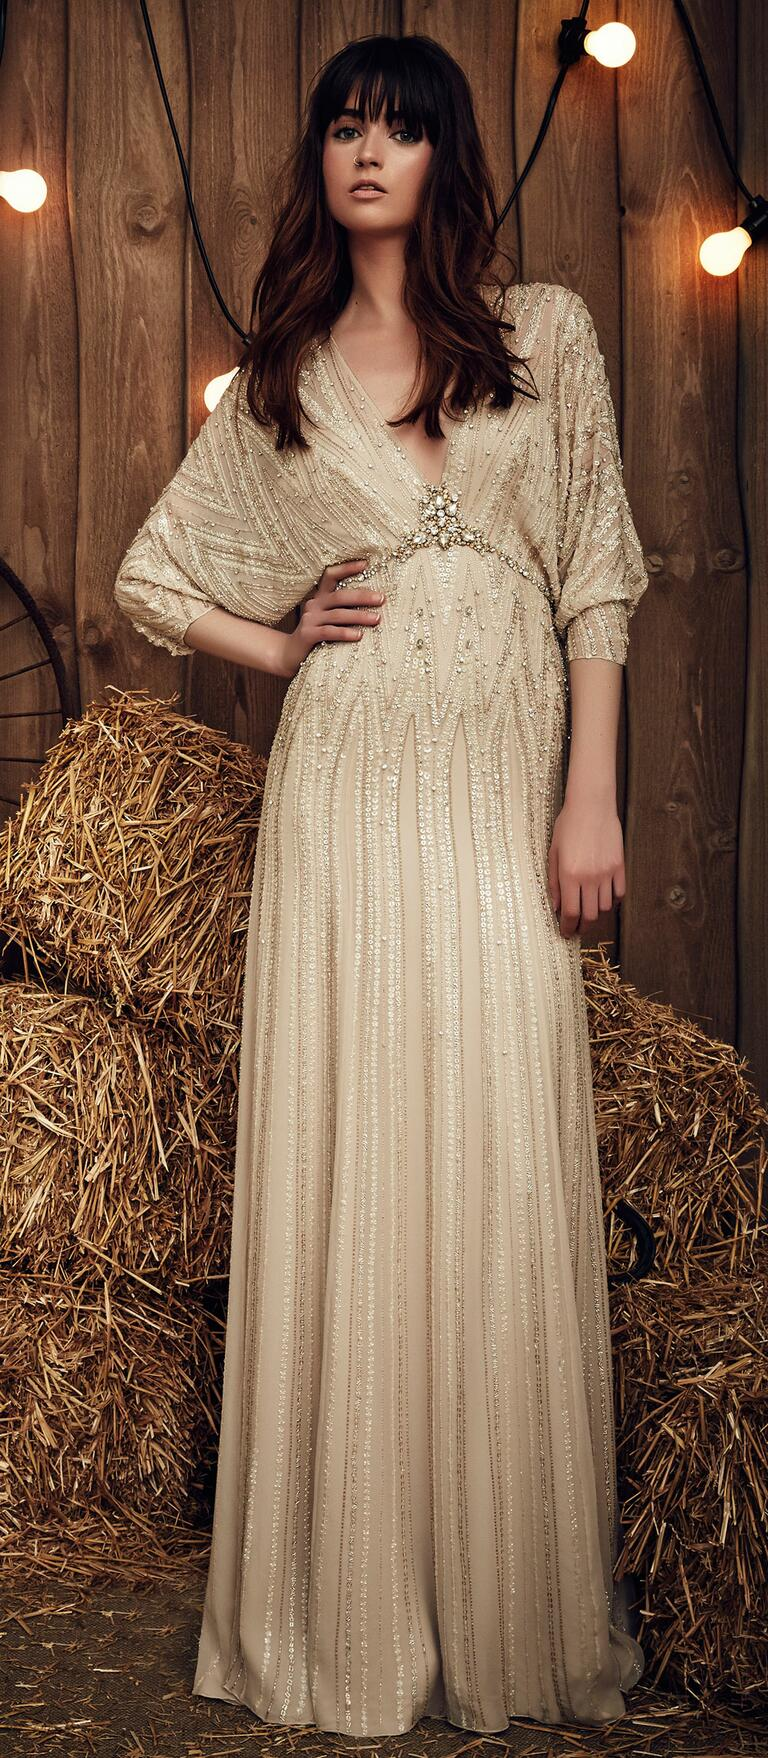 Jenny Packham Spring 2017 Montana wedding dress in a barley hue with a gypsy-inspired, drop-wait silhouette, gathered three-quarter-length sleeves, and intricate stone and sequin embellishment from the waist to the plunging neck line